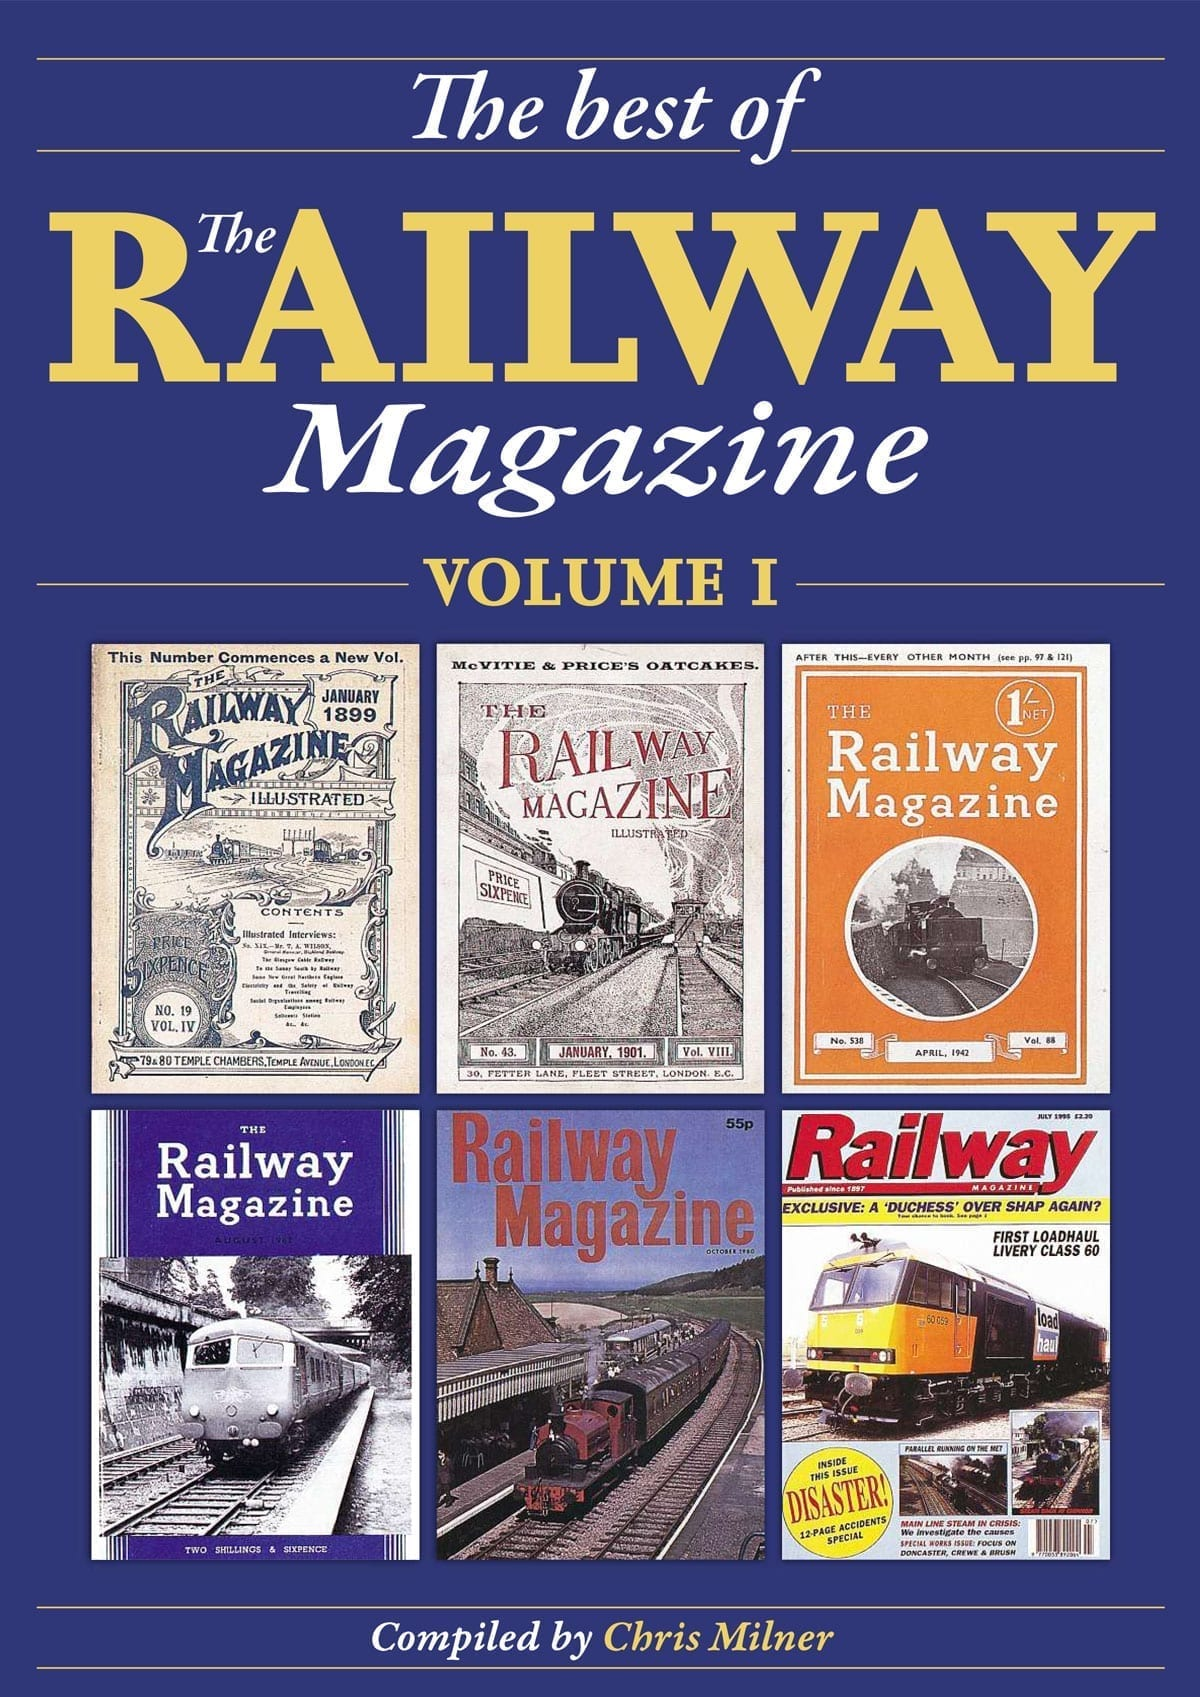 Best of the Railway Magazine – Volume 1